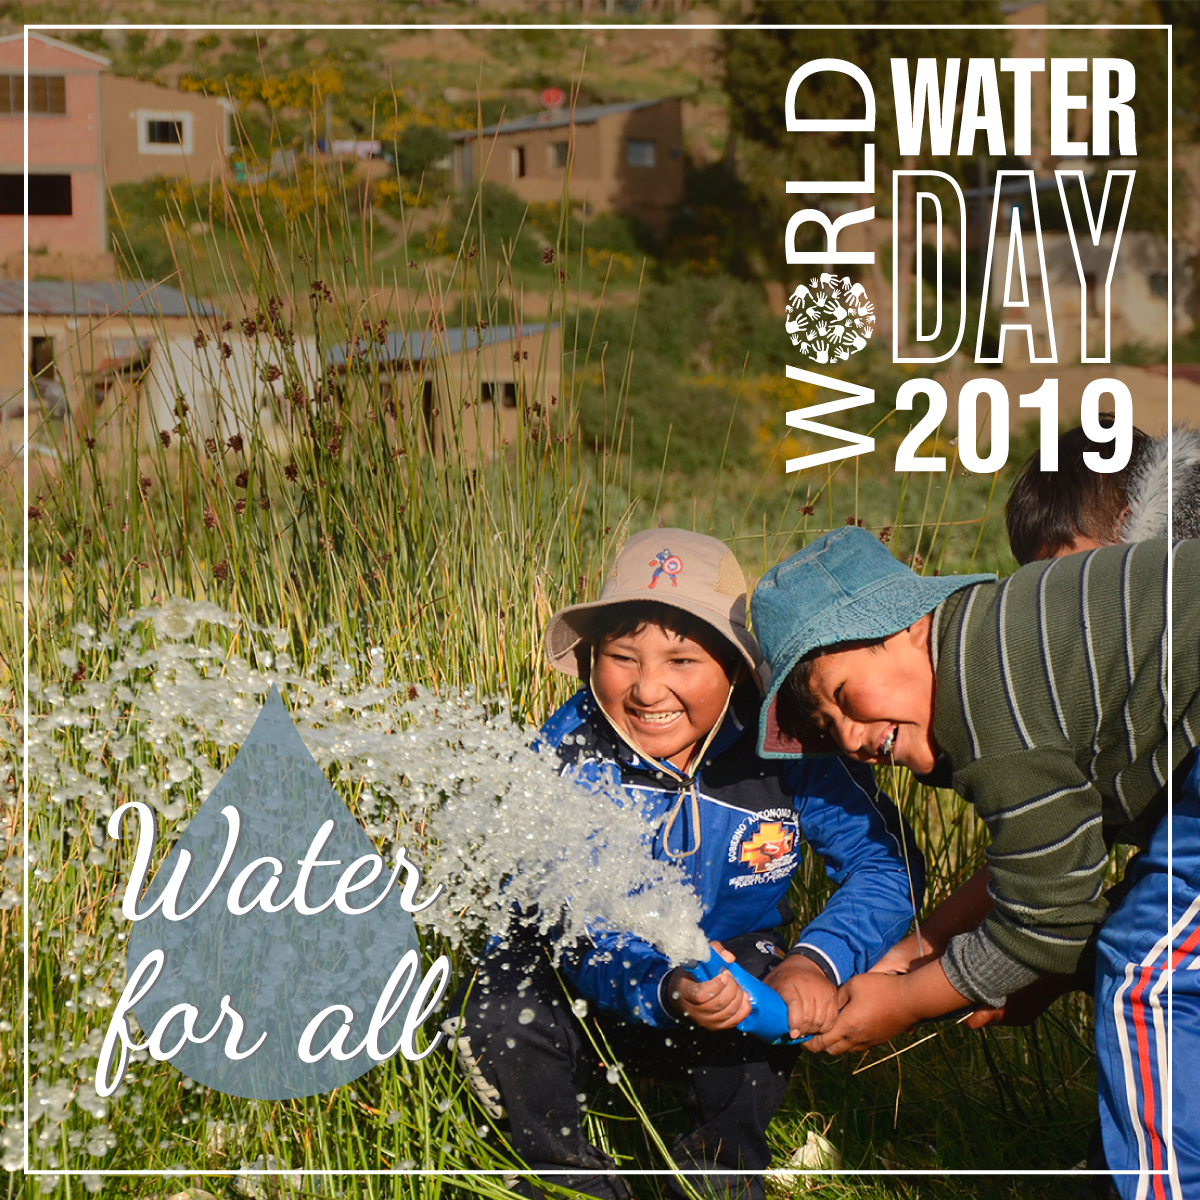 Celebrate World Water Day on March 22nd! image